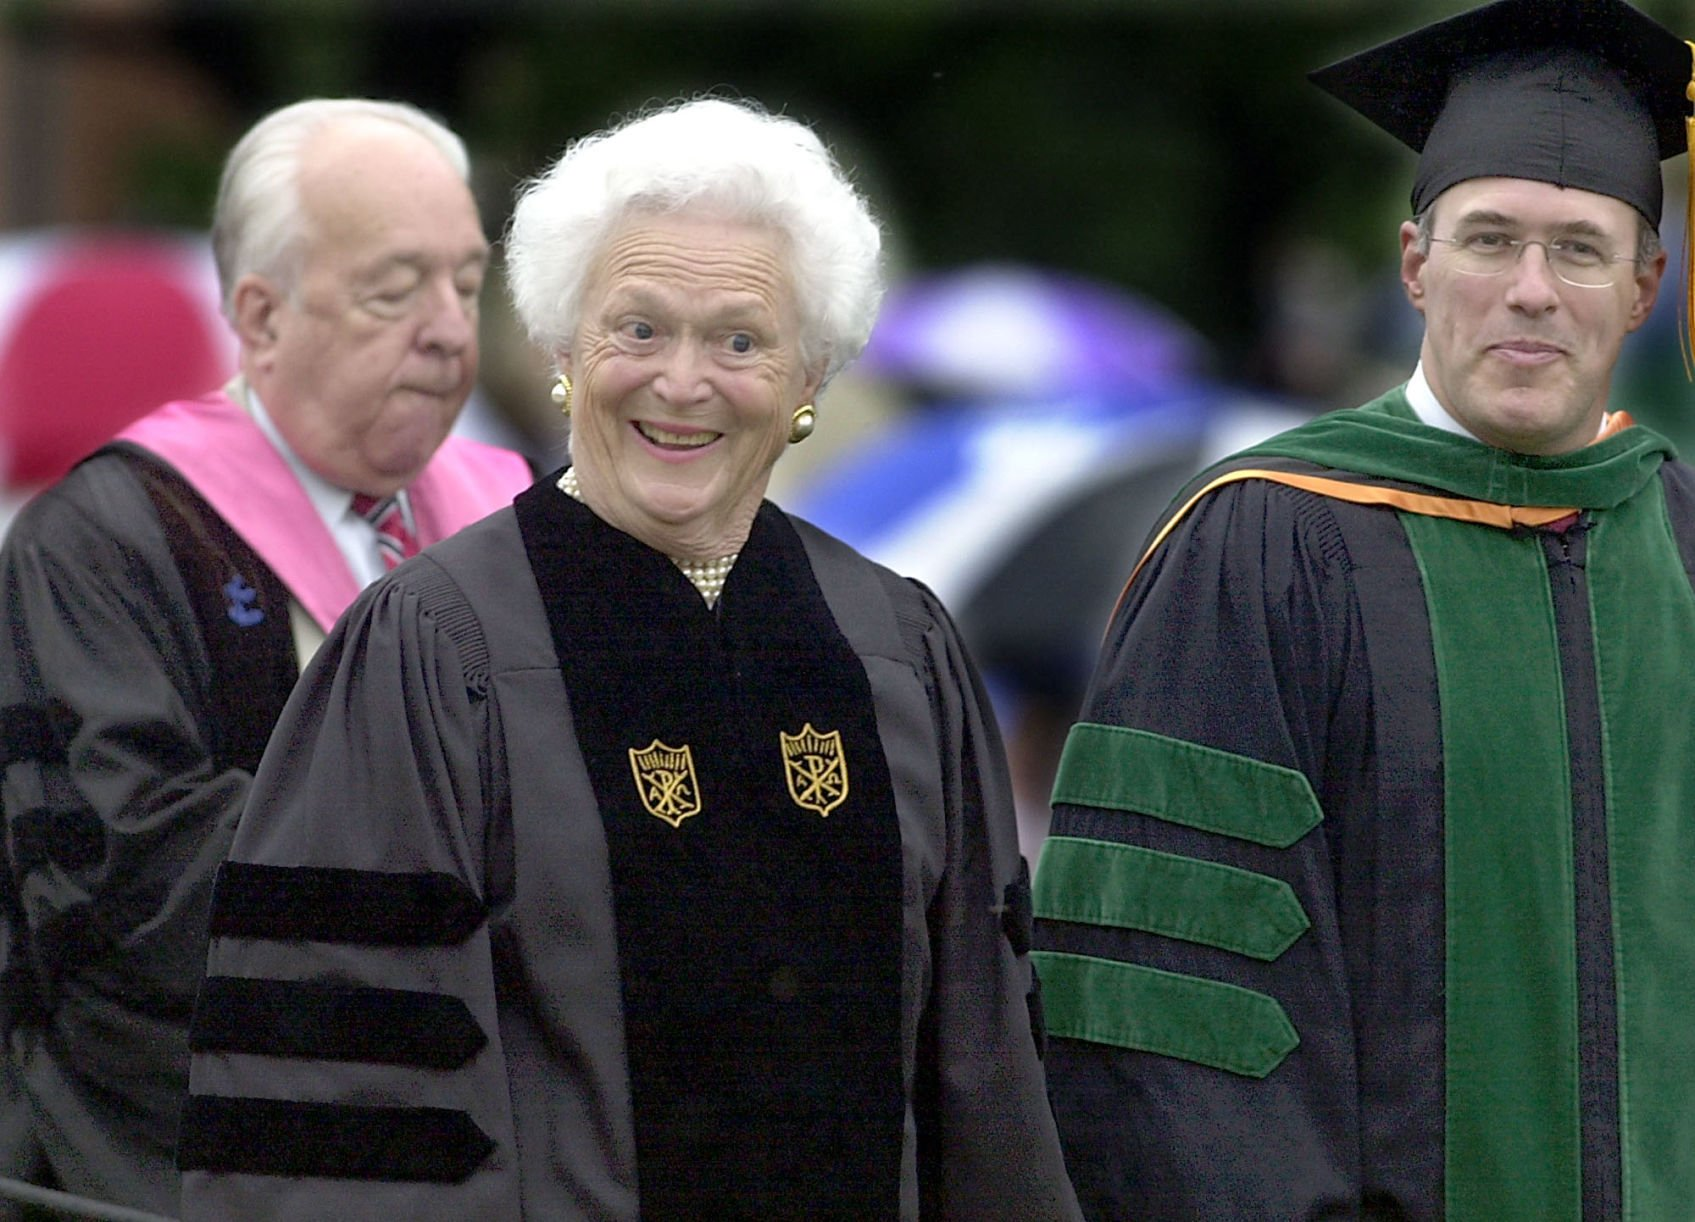 Barbara Bush urged Wake graduates to cherish families during 2001 commencement address | Winston Salem Journal